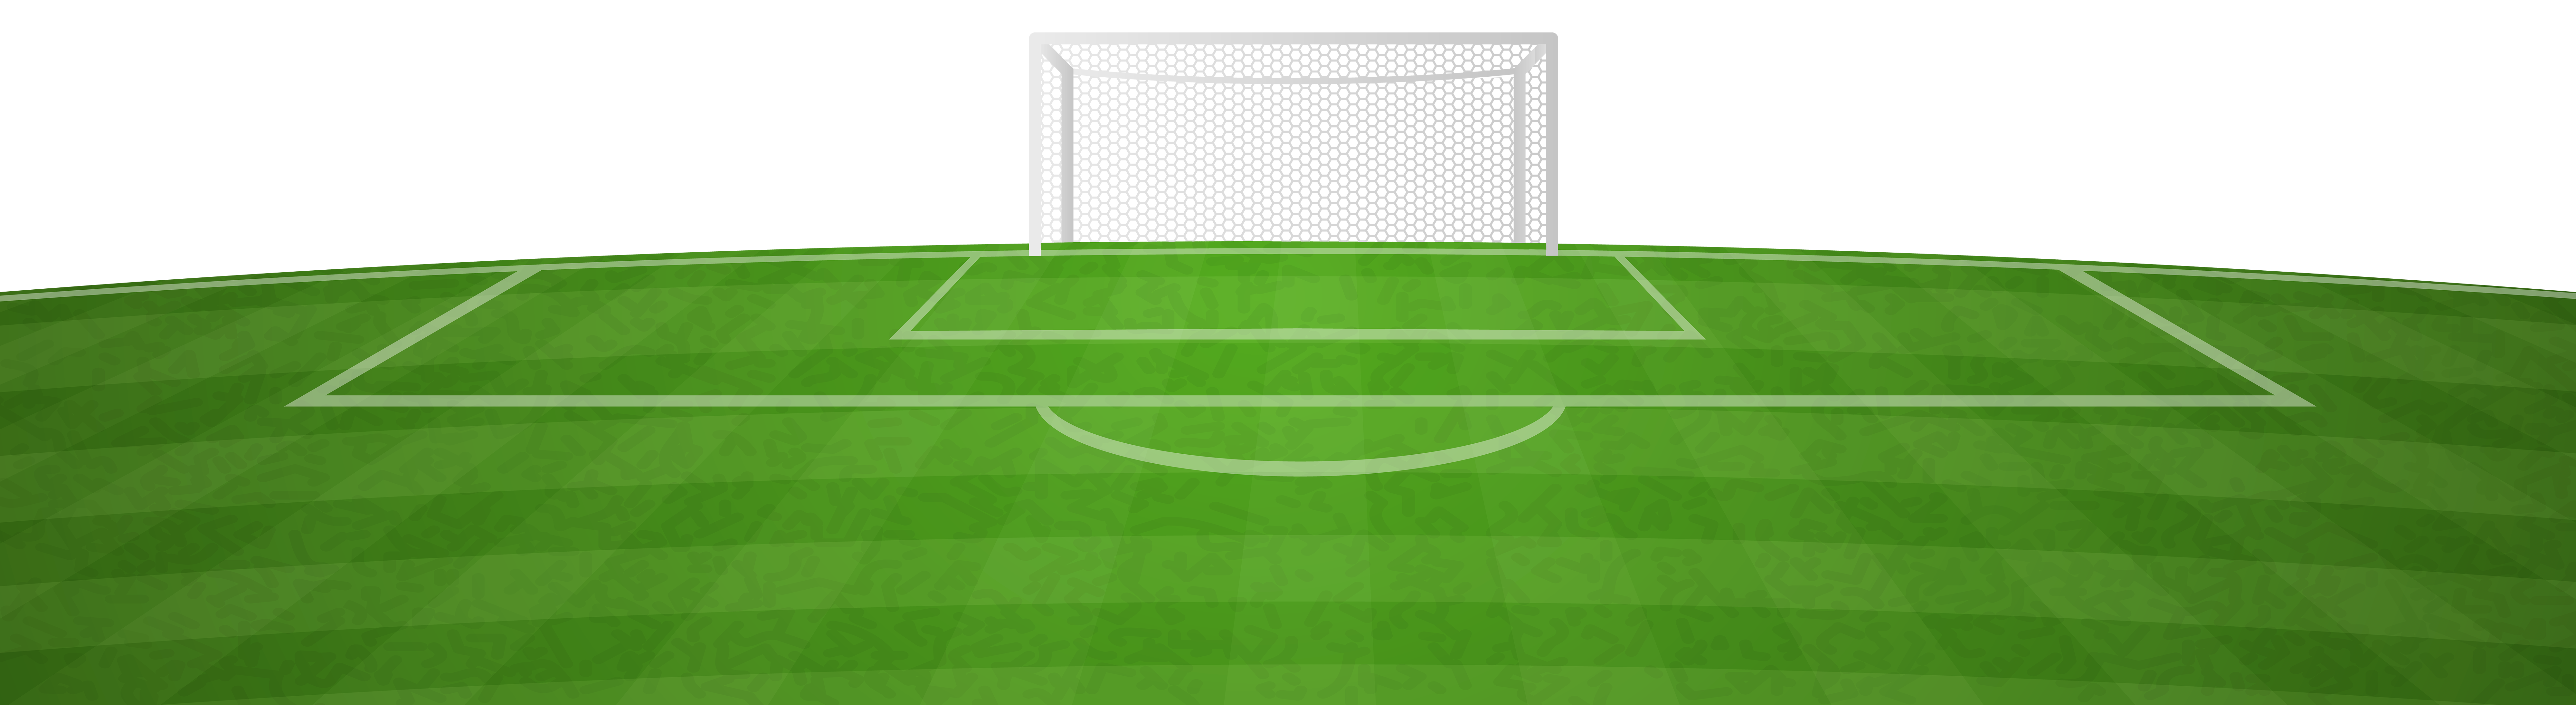 Soccer playground png clip. Clipart football family